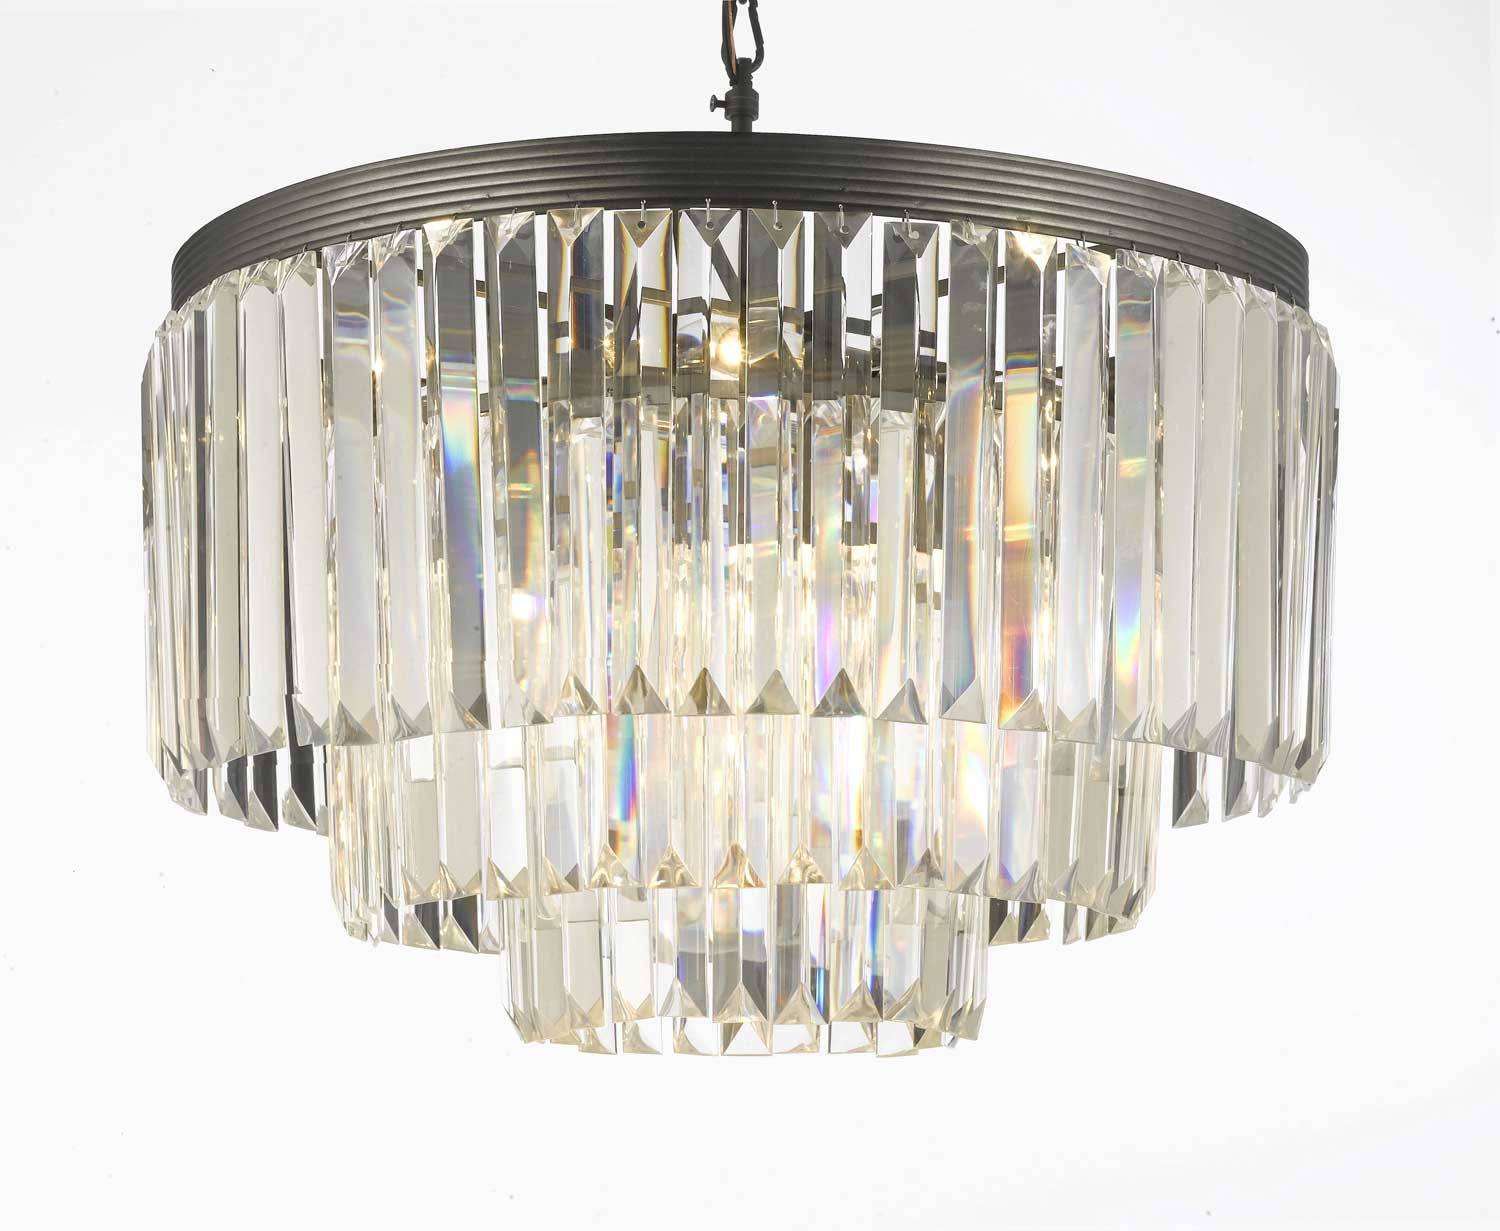 G7 11009 Gallery Chandeliers Retro Odeon Crystal Glass Fringe 3 With Regard To 3 Tier Crystal Chandelier (Image 9 of 15)